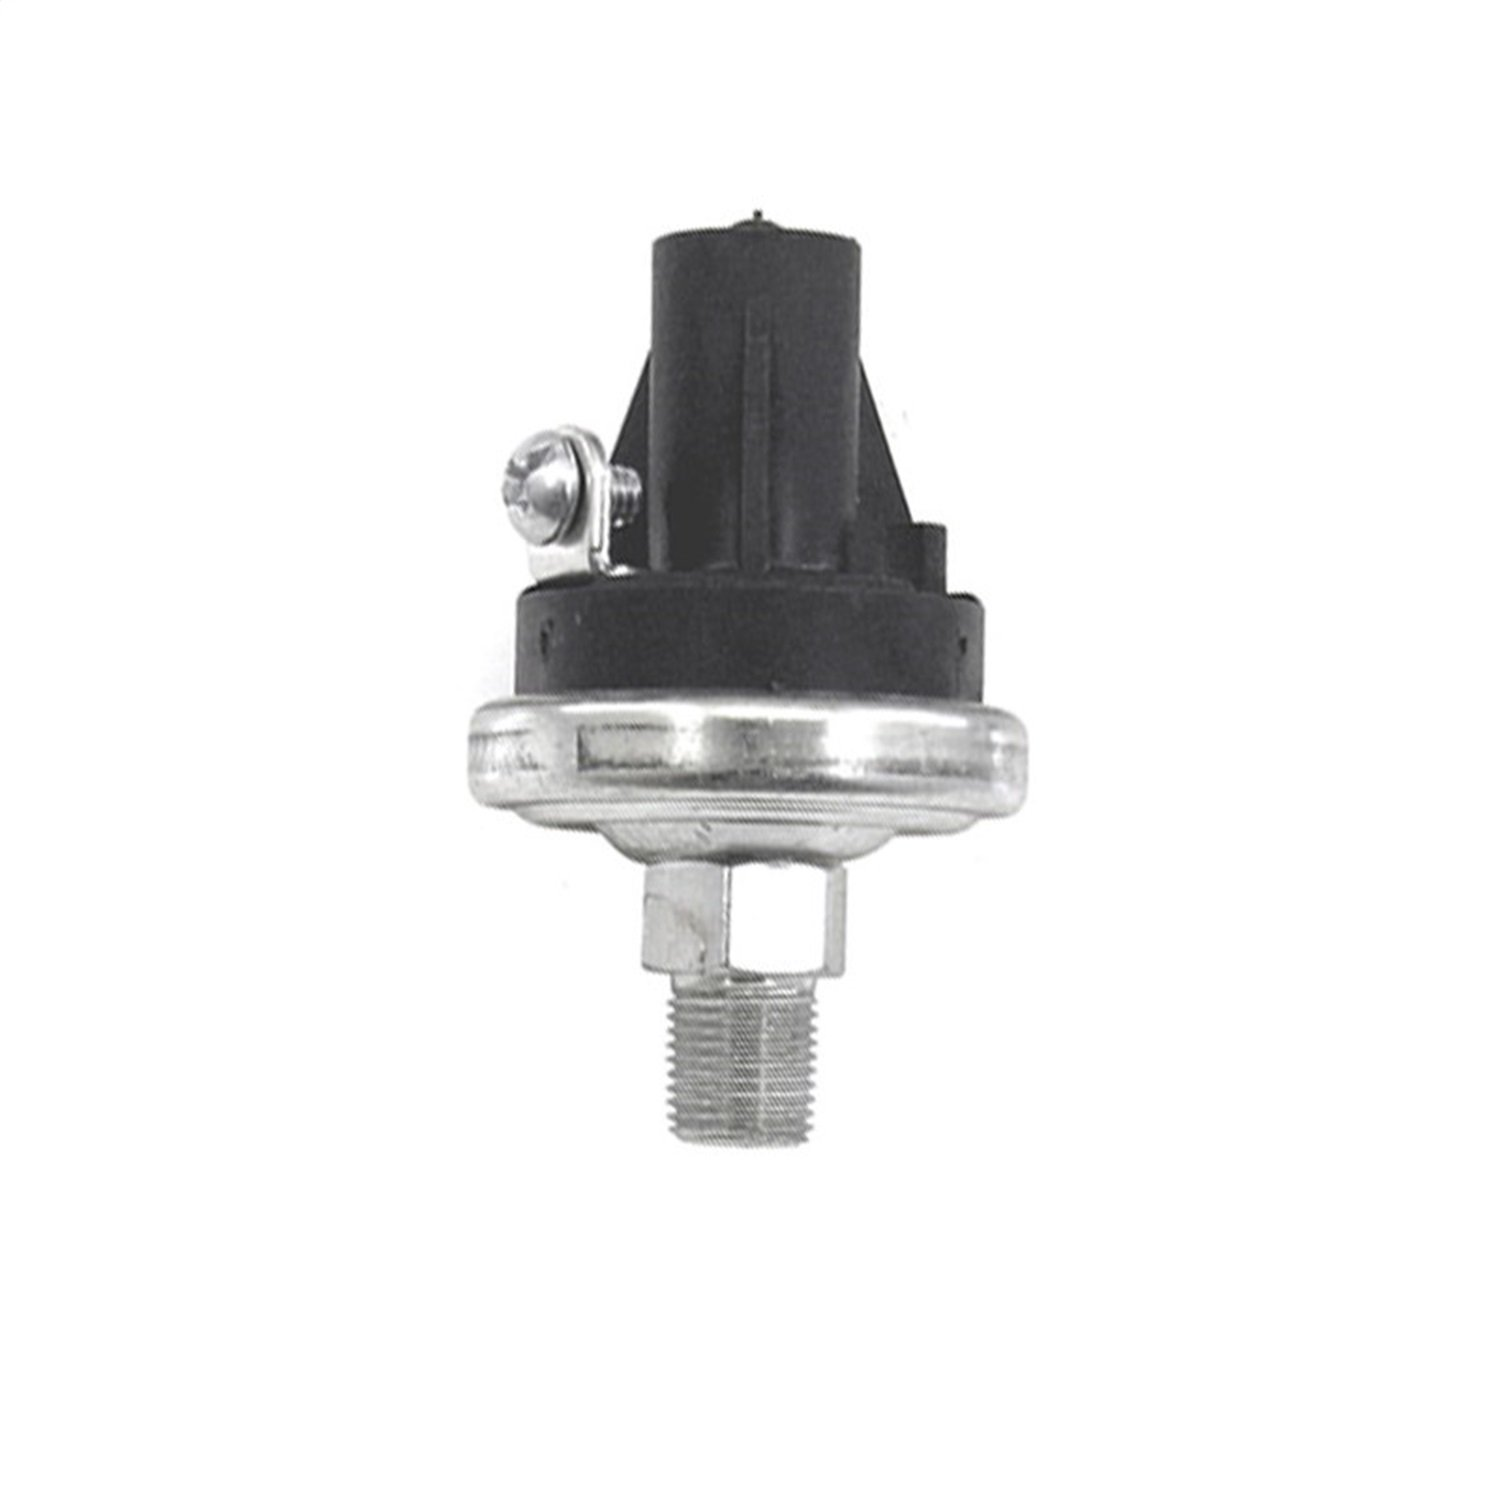 Nitrous Express 11720 EFI Fuel Pressure Safety Switch by Nitrous Express